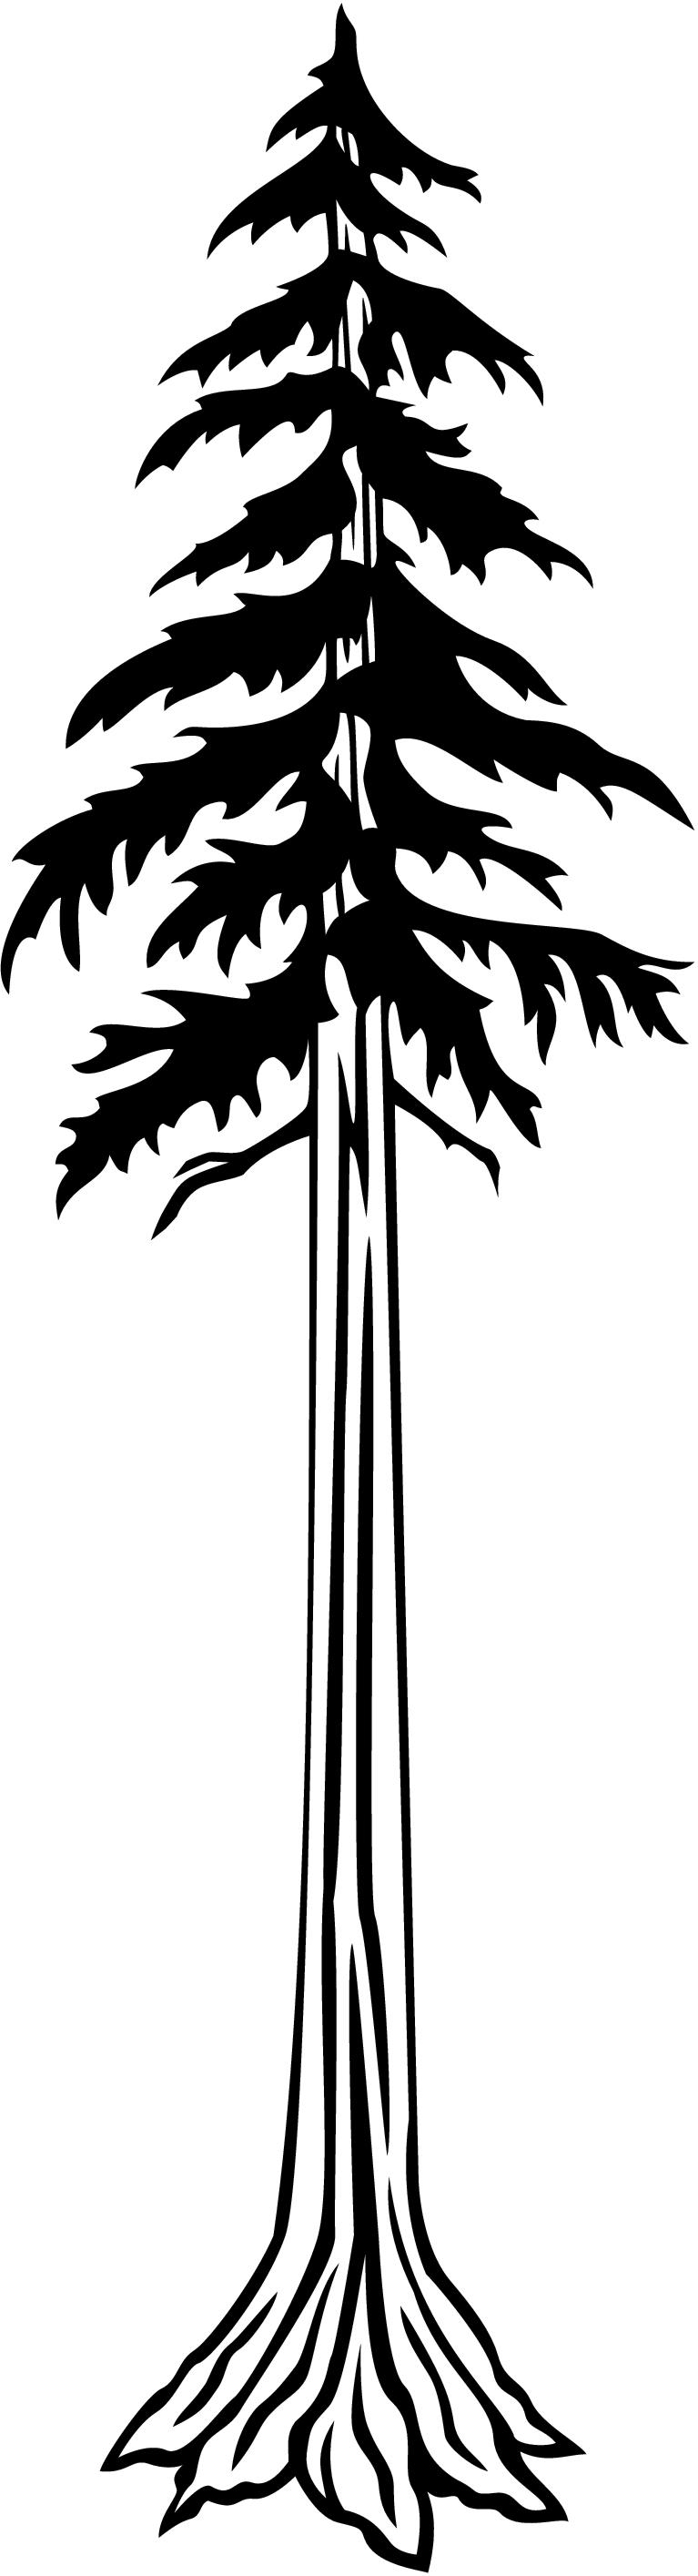 Redwood clipart #17, Download drawings